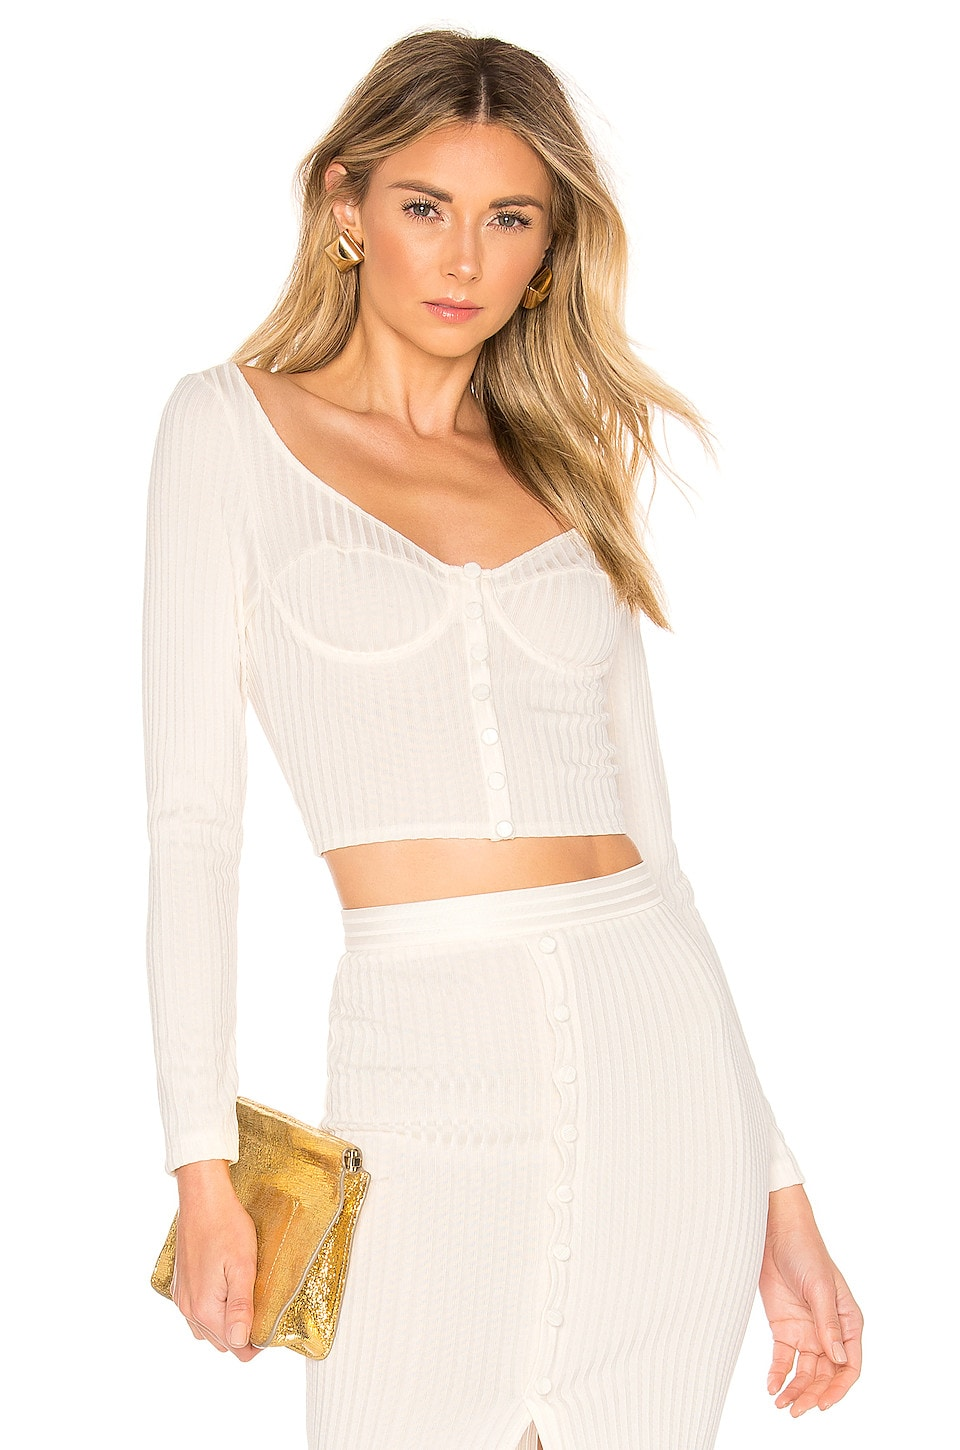 fleur du mal Long Sleeve Knit Bra Top in Ivory